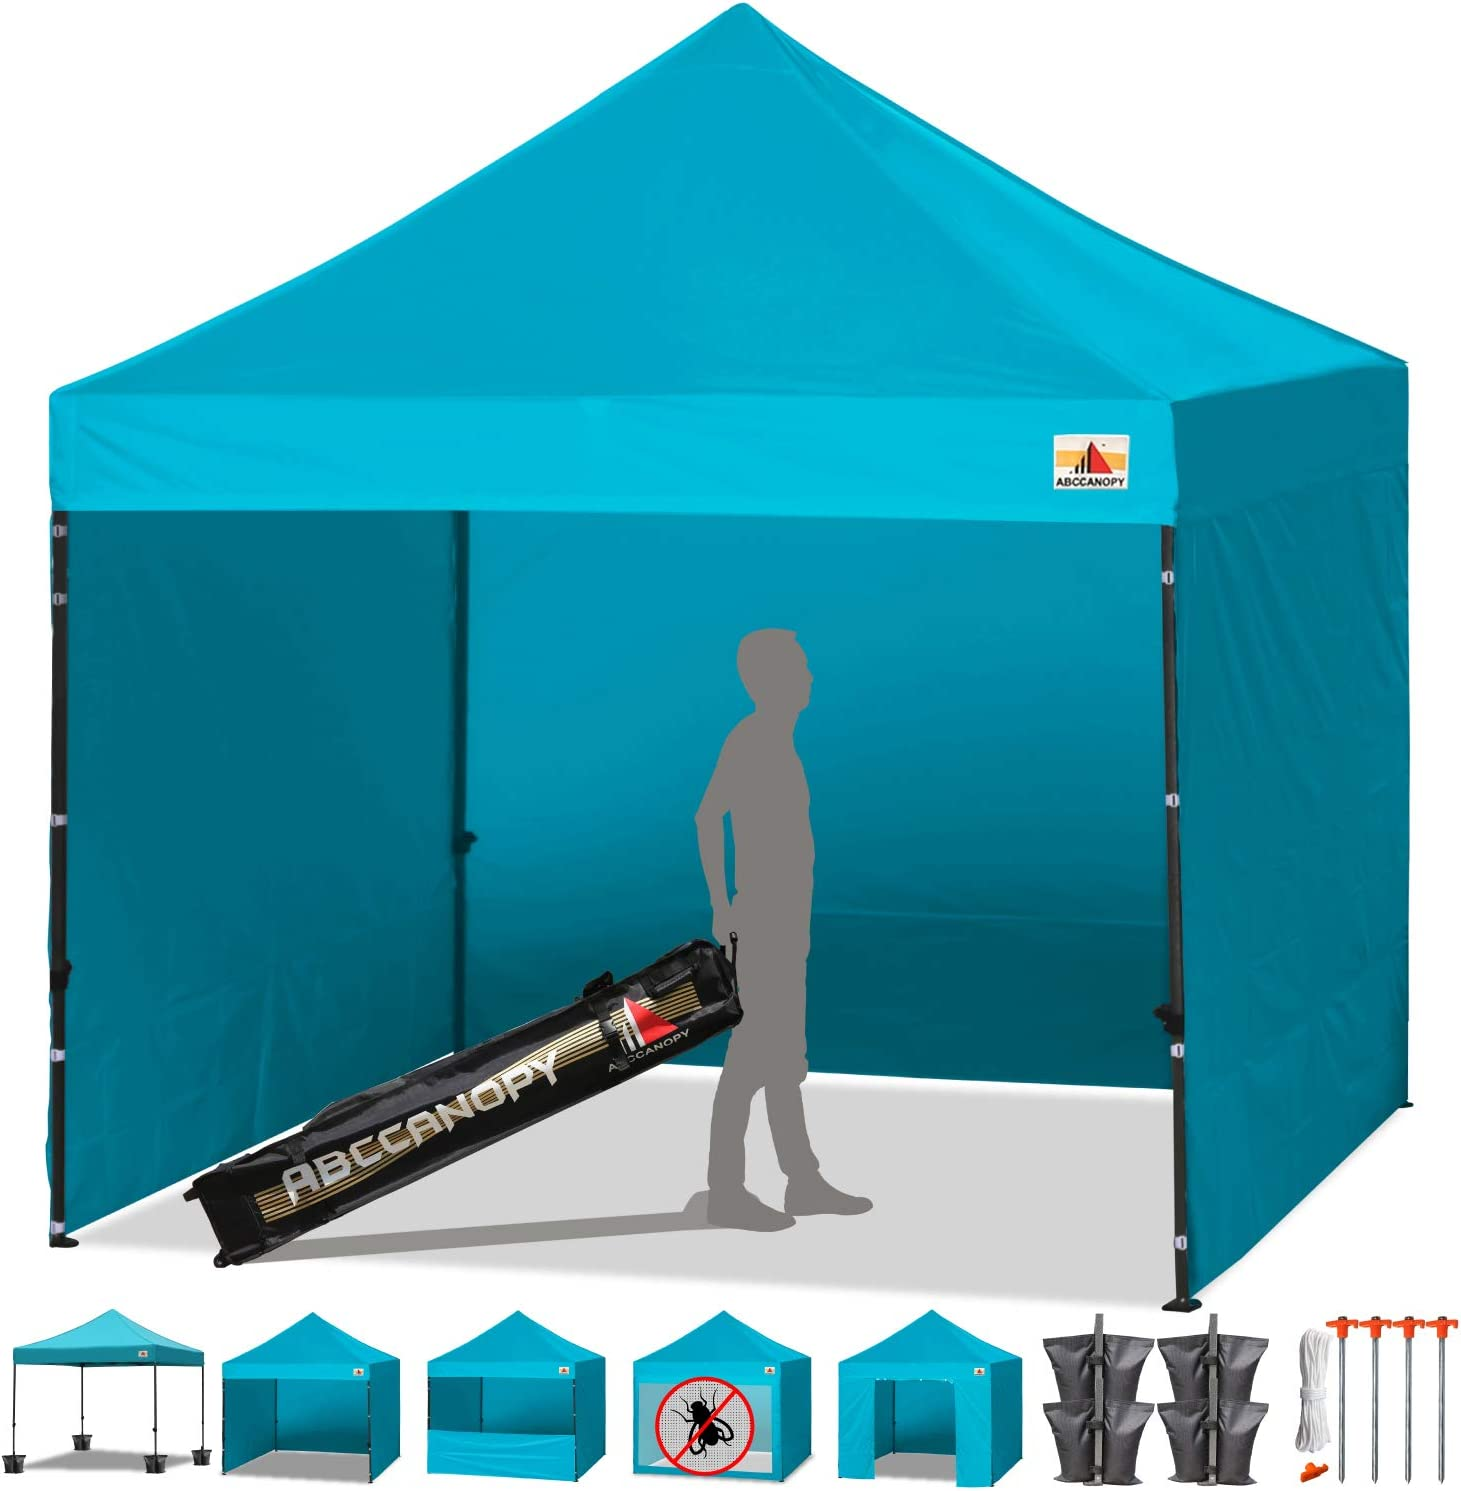 ABCCANOPY Canopy Tent Popup Canopy 10×10 Pop Up Canopies Commercial Tents Market stall with 6 Removable Sidewalls and Roller Bag Bonus 4 Weight Bags and 10ft Screen Netting and Half Wall,Viridis